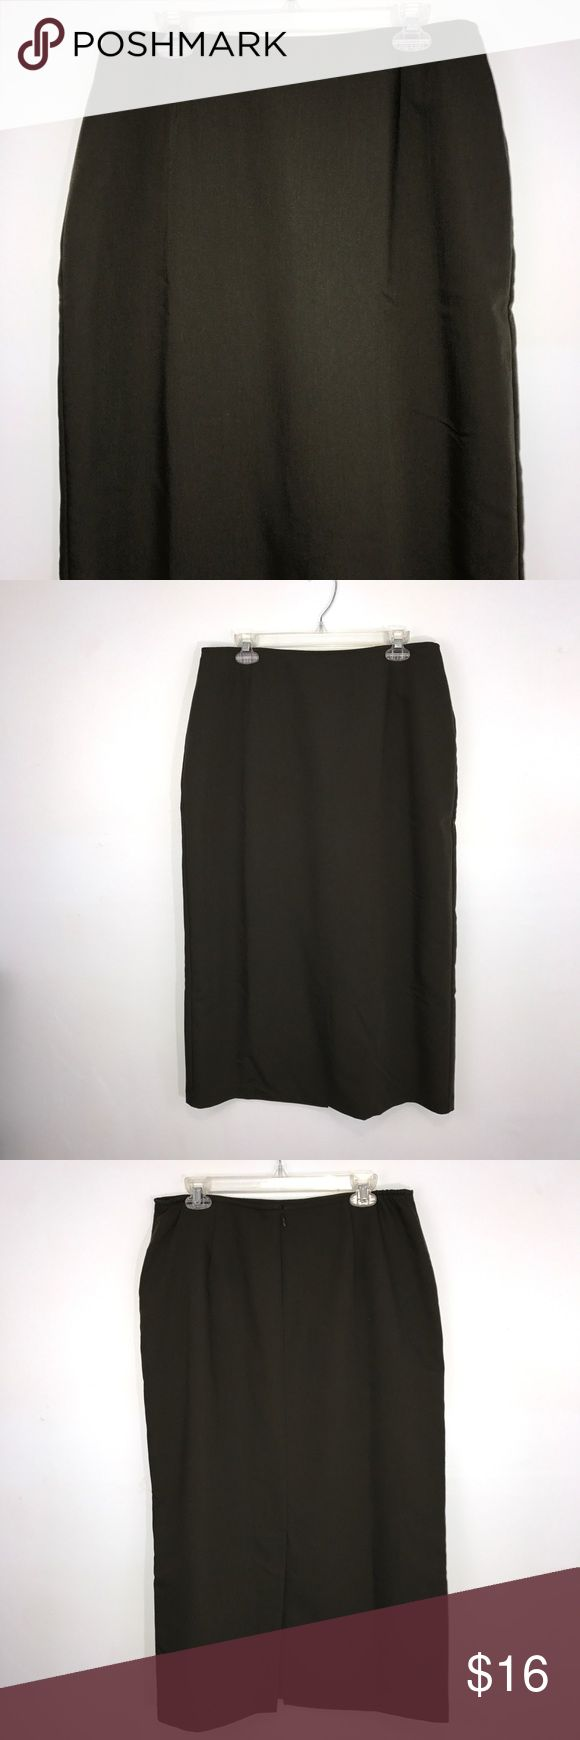 """Sag Harbor Green Maxi Skirt 16 Sag Harbor dark green Maxi skirt. 4"""" of elastic on rear sides of waistband. Fully lined. Lying flat, approximate measurements are: waist 16.5-17.5""""; hip 23""""; length 41"""".  (L02-32)    🌼 No holes, piling or stains. Items stored in smoke free, pet free, perfume free environment. No trades or modeling. Same or next day shipping.  Save by bundling. All offers should be submitted with the offer button. Sag Harbor Skirts Maxi"""